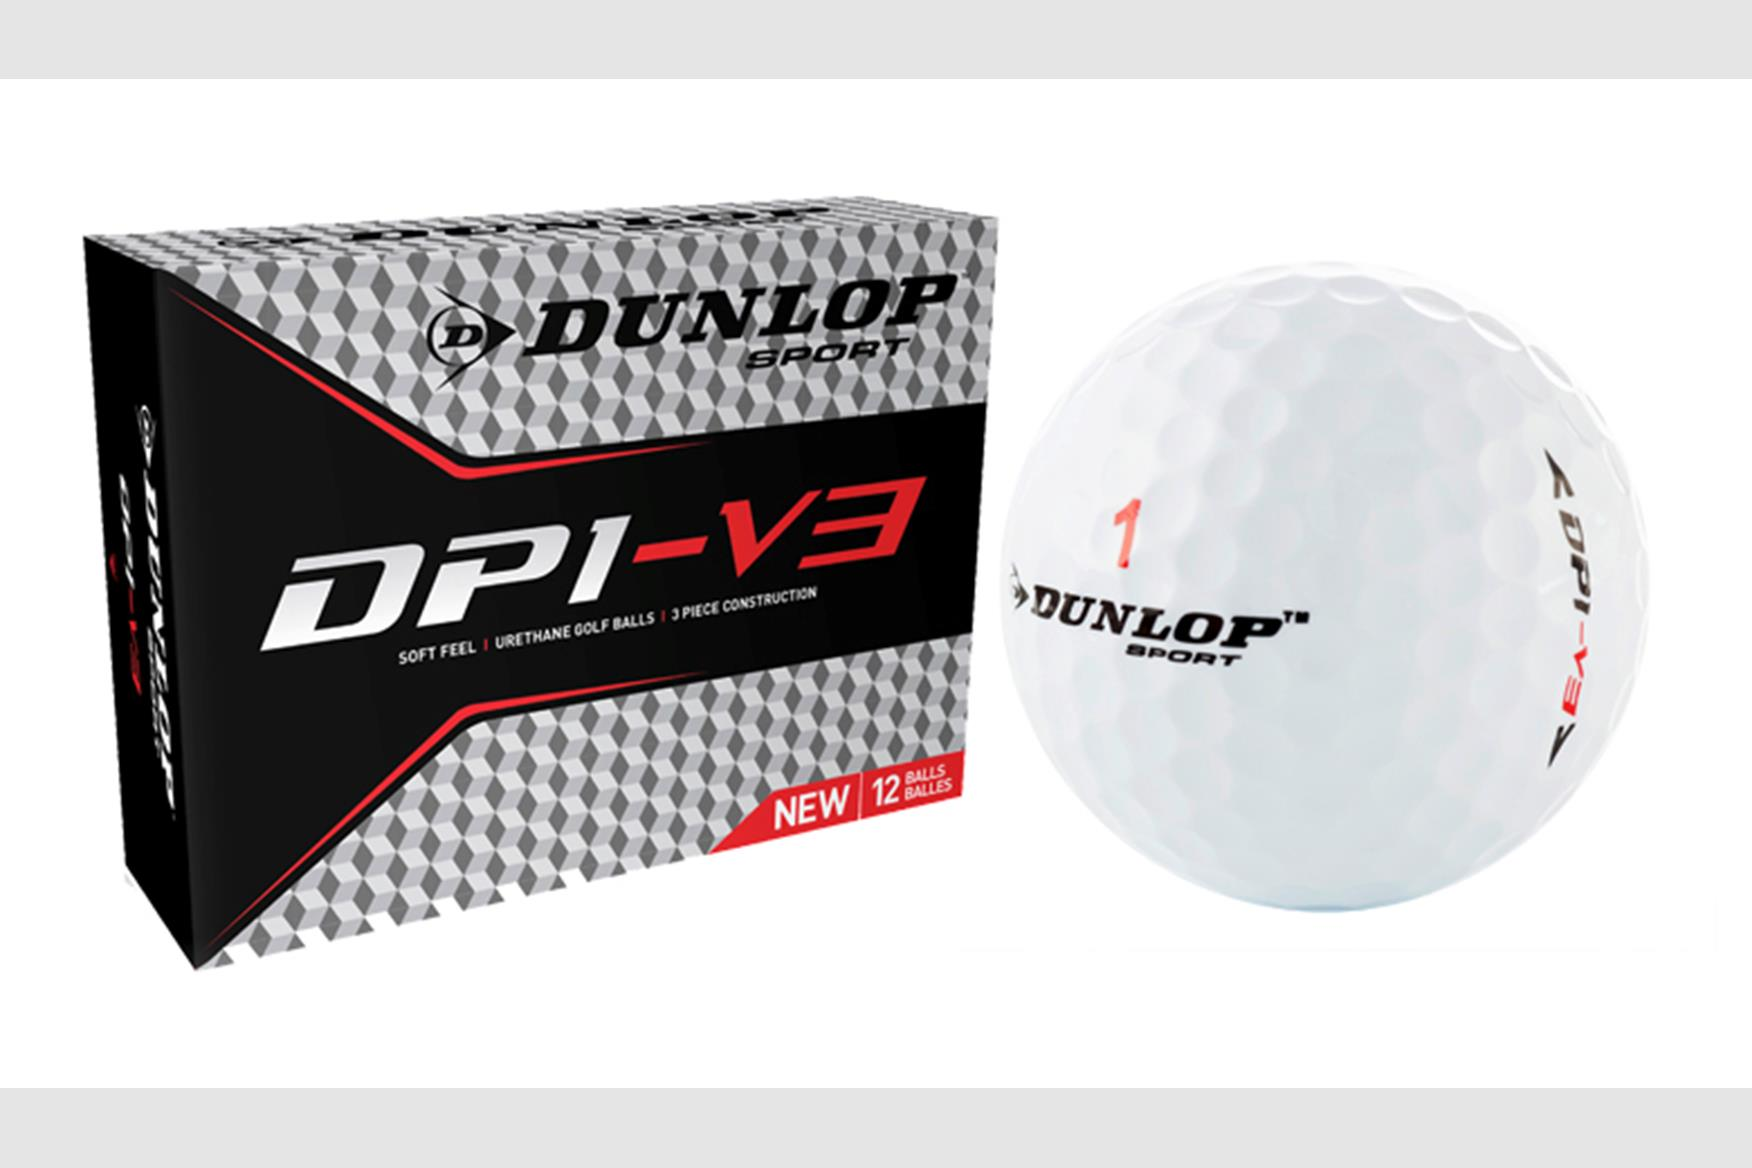 Dunlop Tour Soft Golf Balls Review